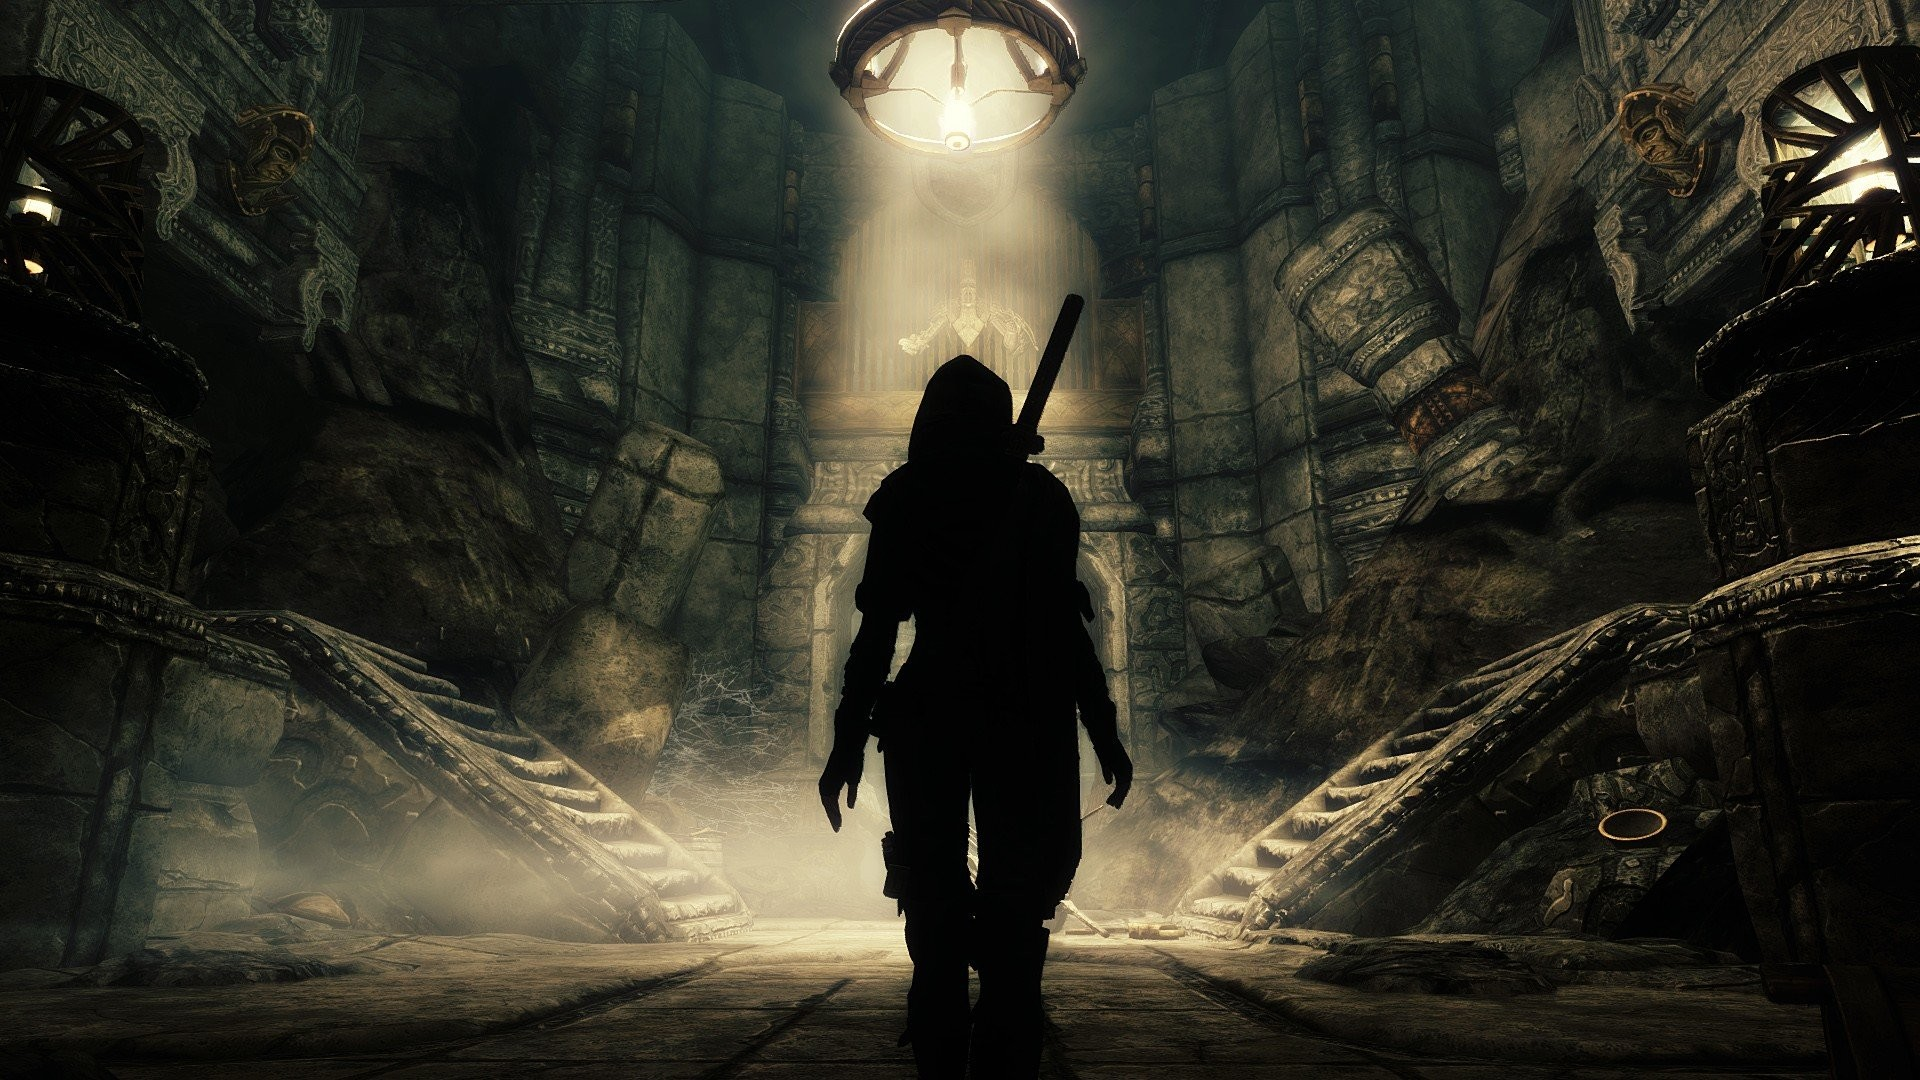 Awesome Wallpapers Girl Sniper Skyrim Dawnguard Wallpaper 76 Images